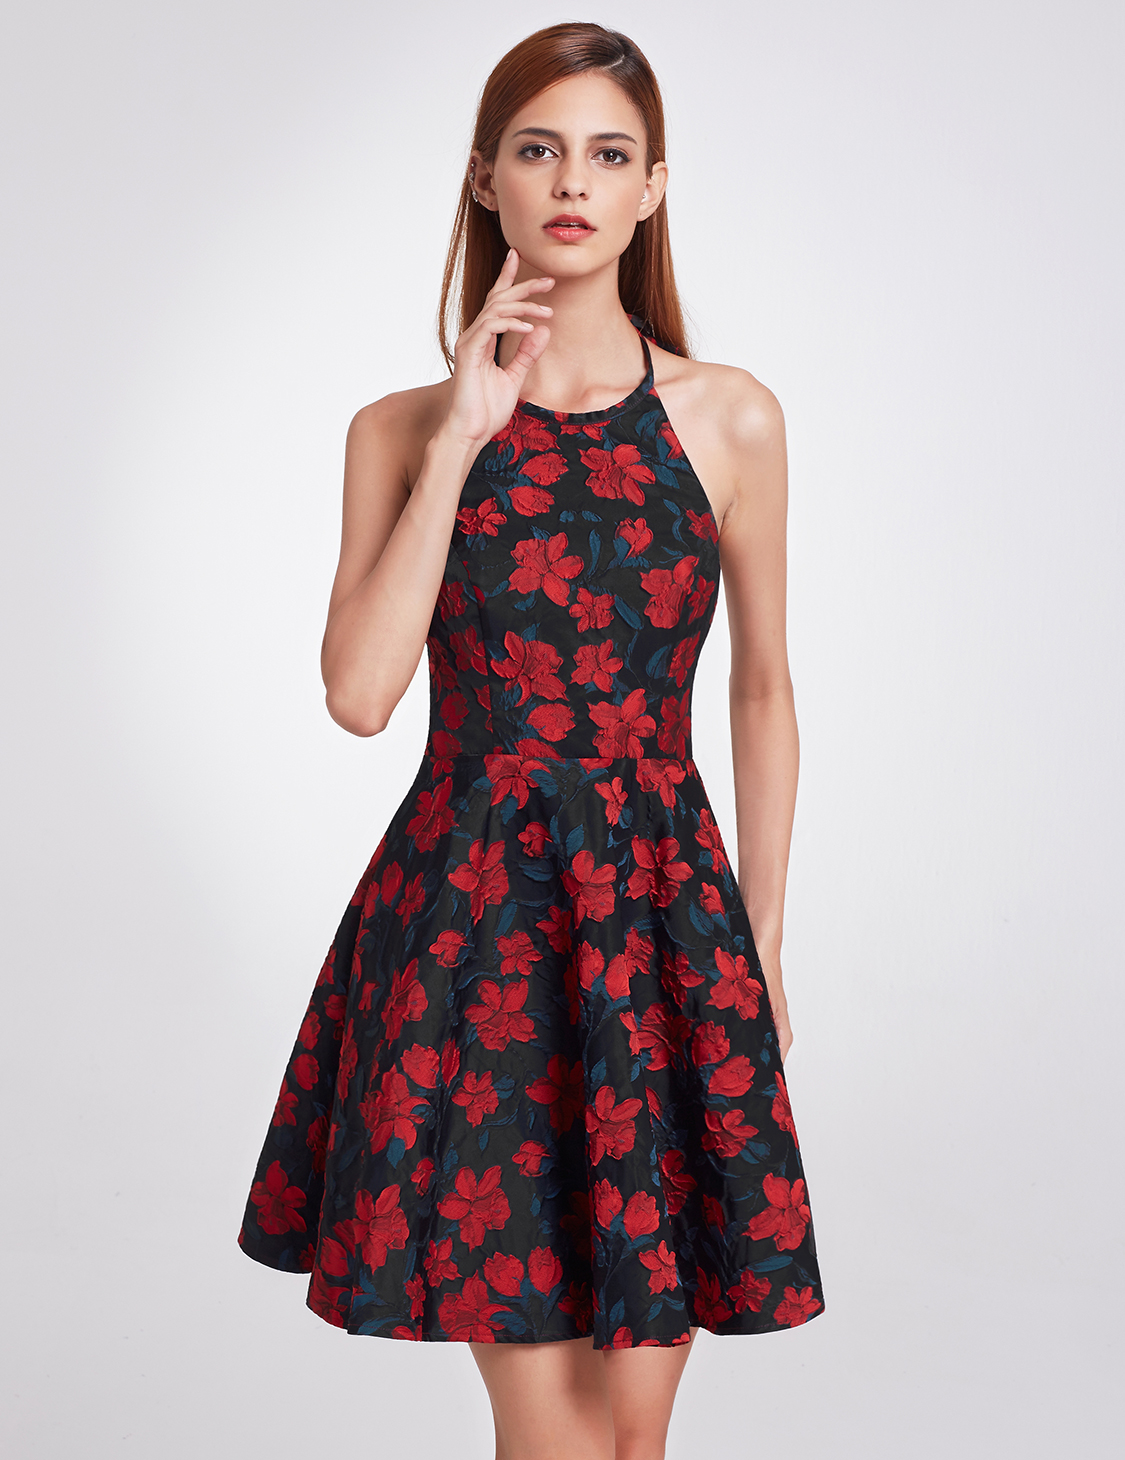 Details about Backless Cocktail Dress Halter Neck Fit and Flare Party Dress 05945 Ever Pretty